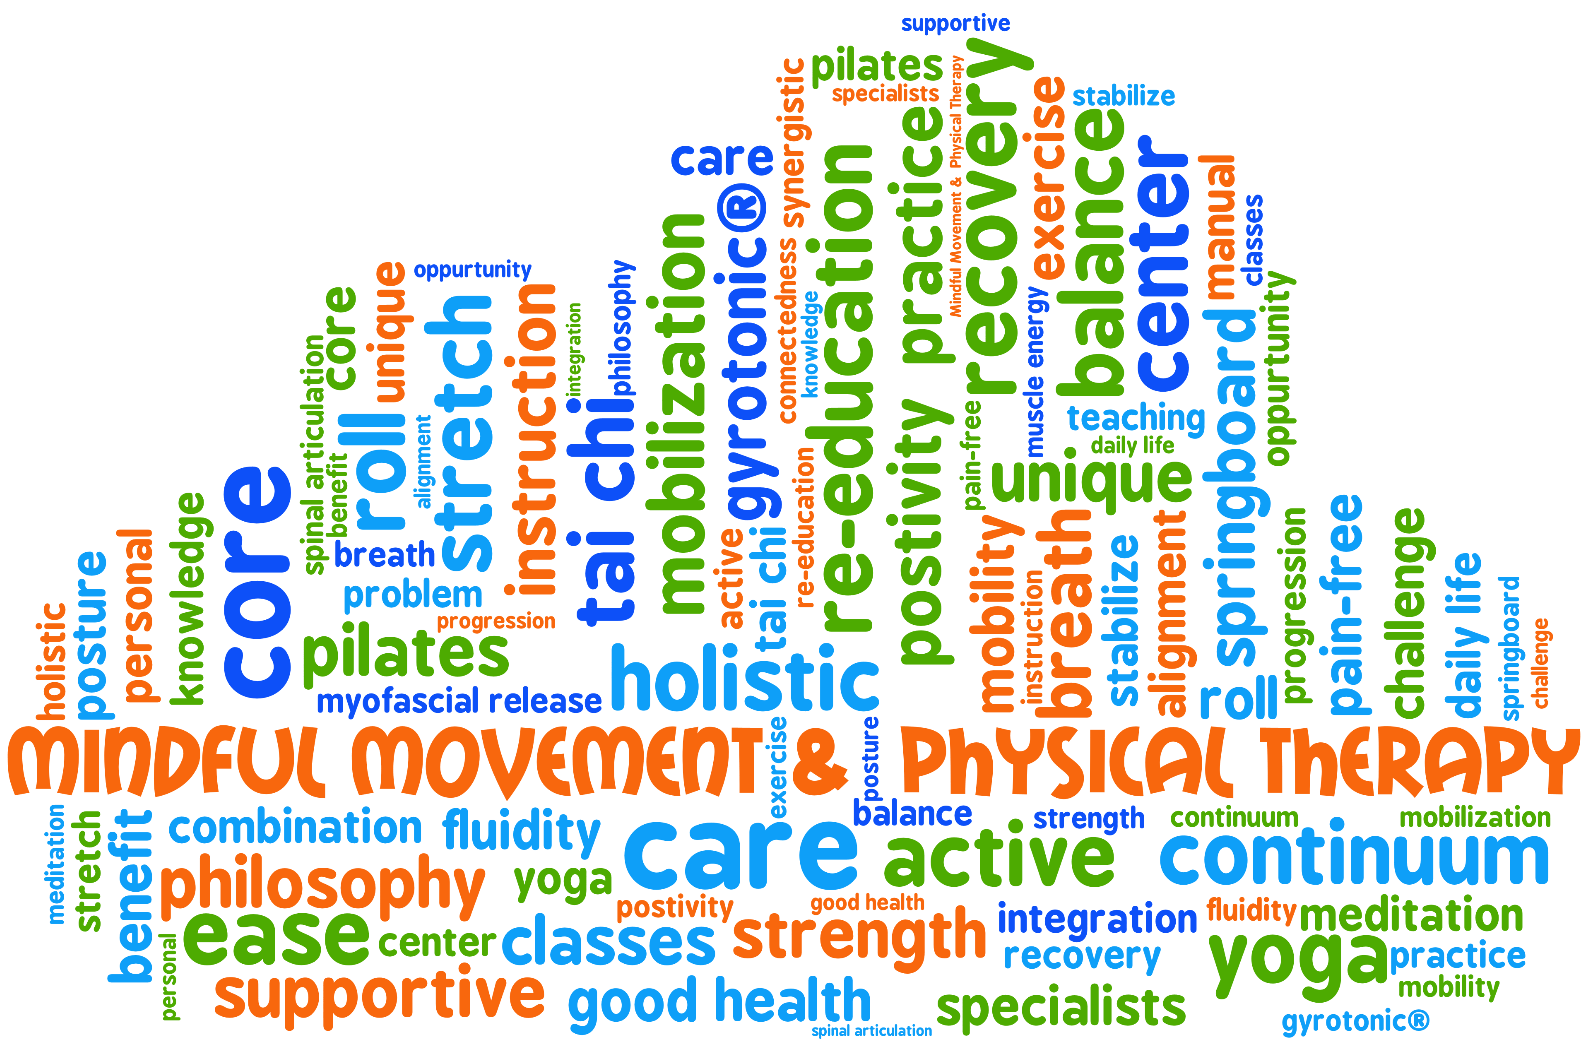 what word would you use to describe yourself mindful movement what word would you use to describe yourself